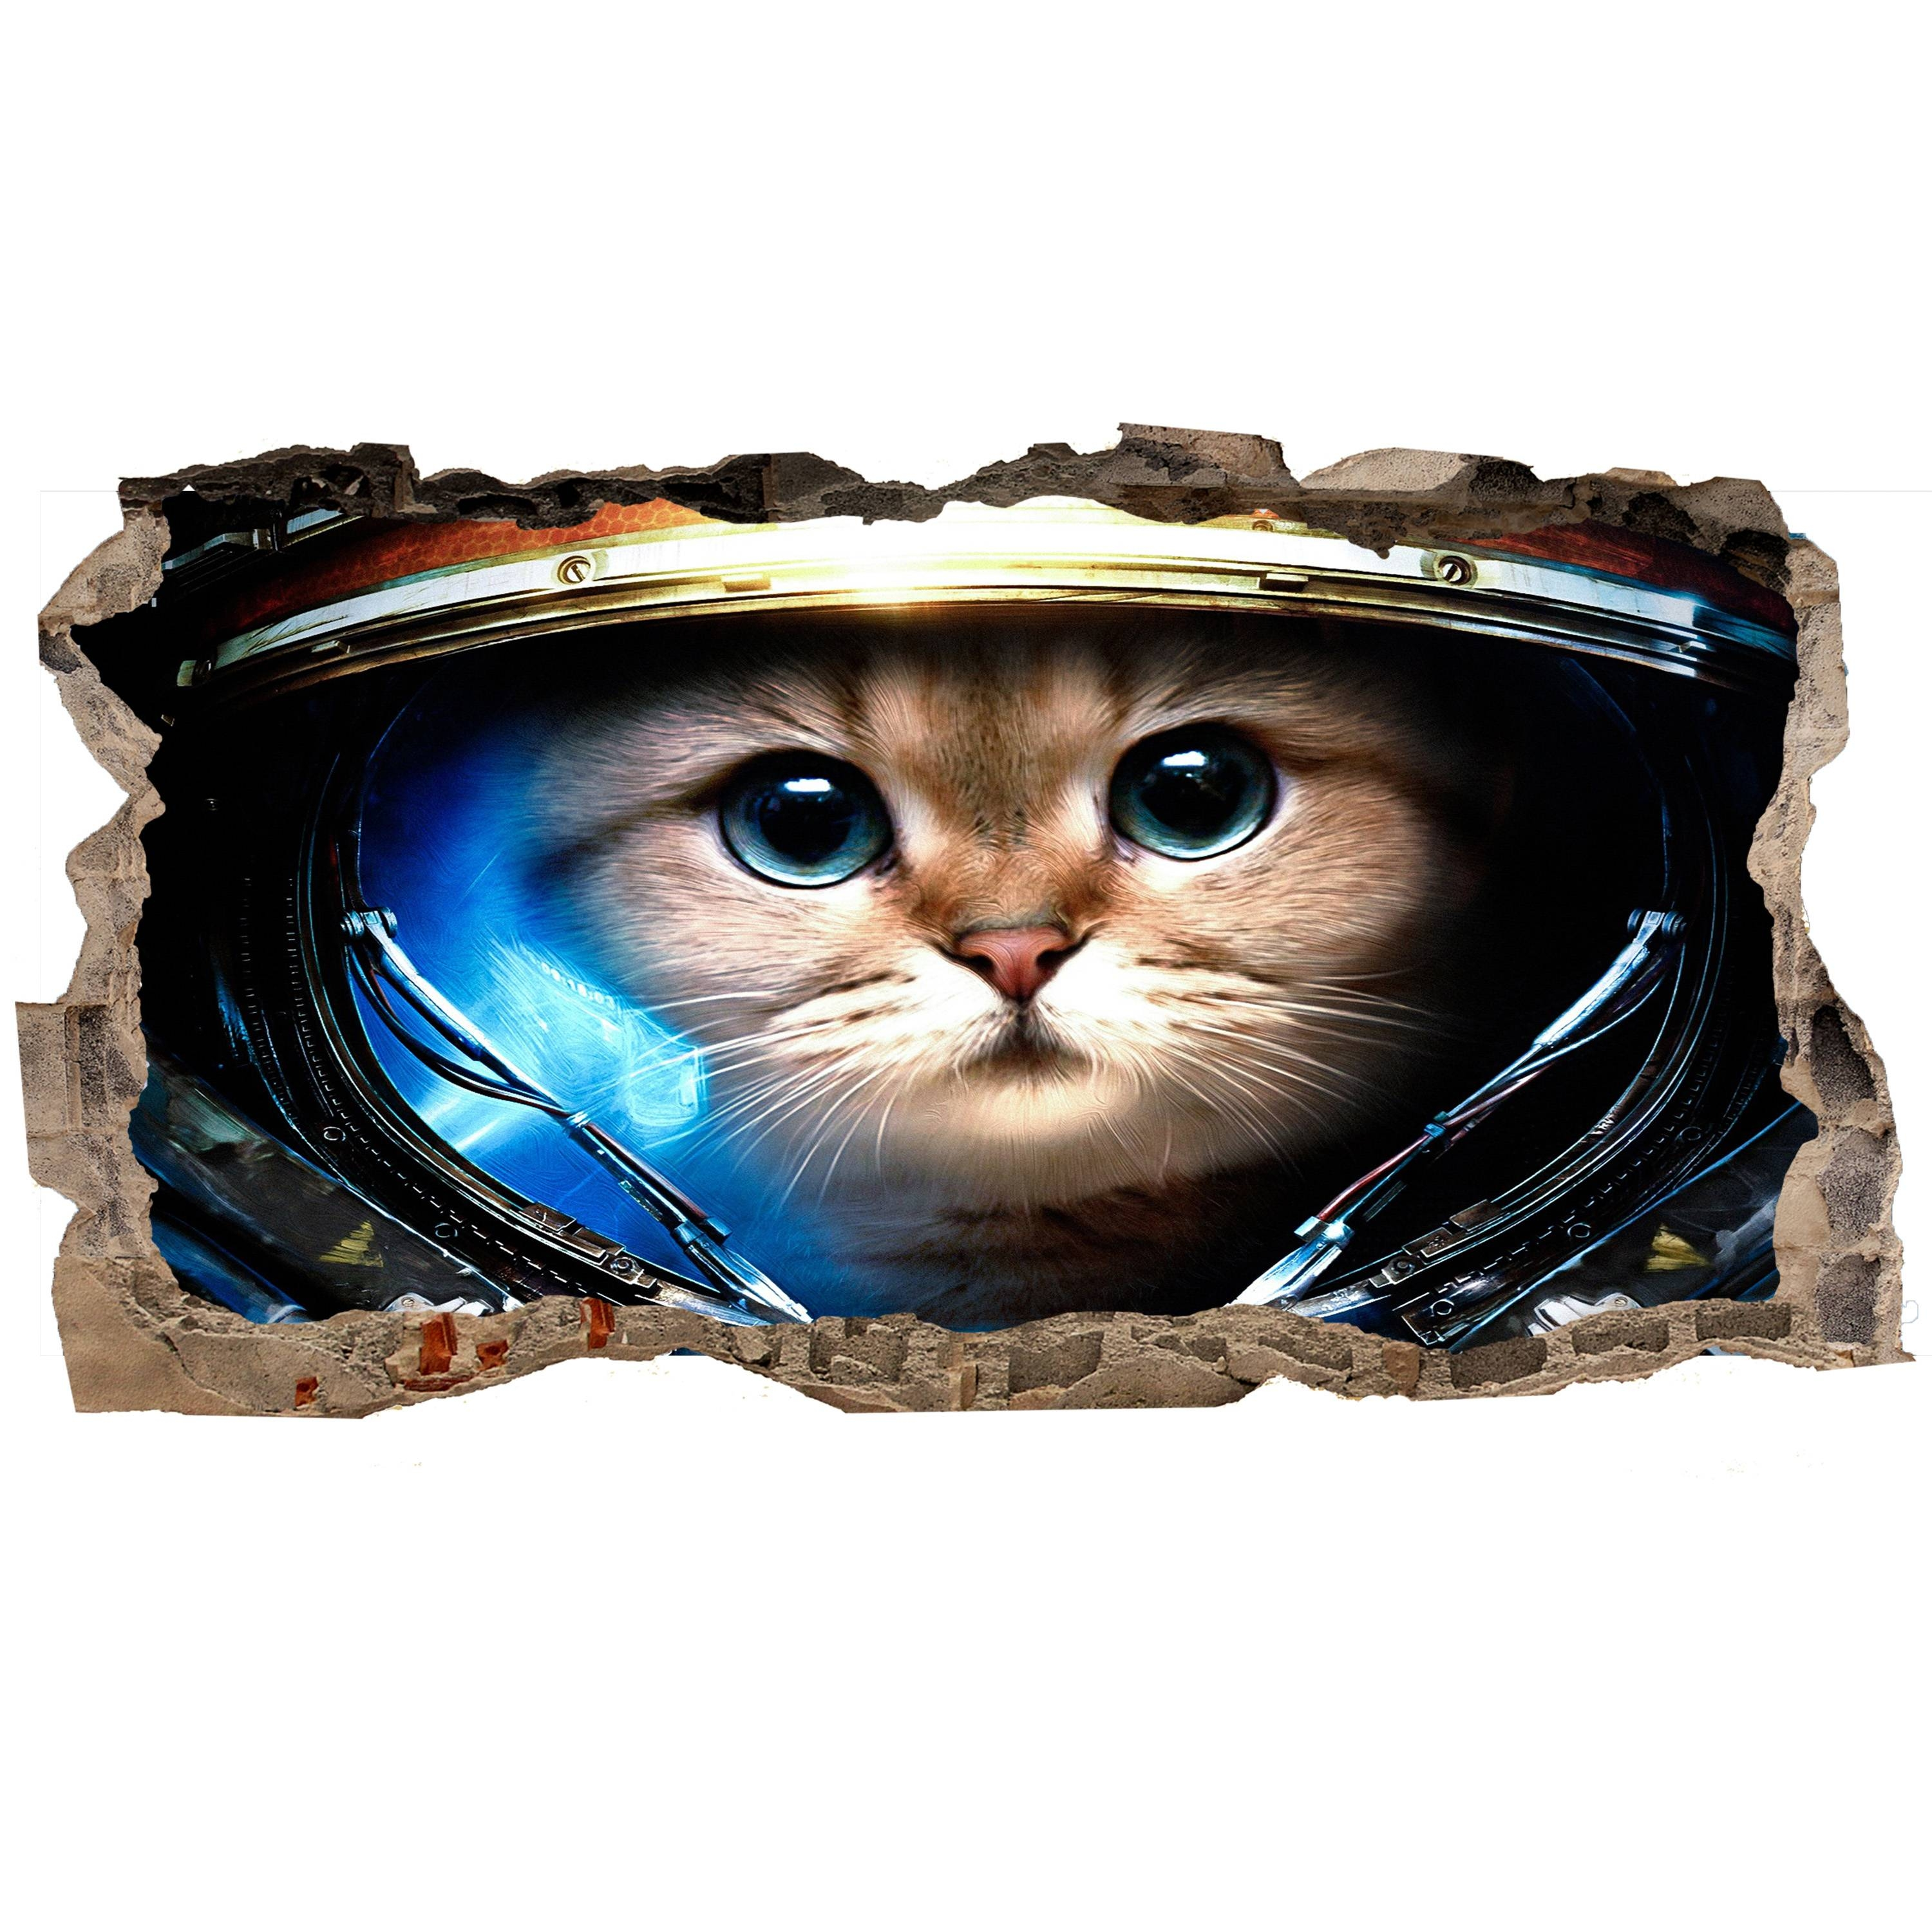 Startonight 3d Mural Wall Art Photo Decor Astronaut Cat Amazing Intended For Best And Newest Astronaut 3d Wall Art (View 9 of 20)